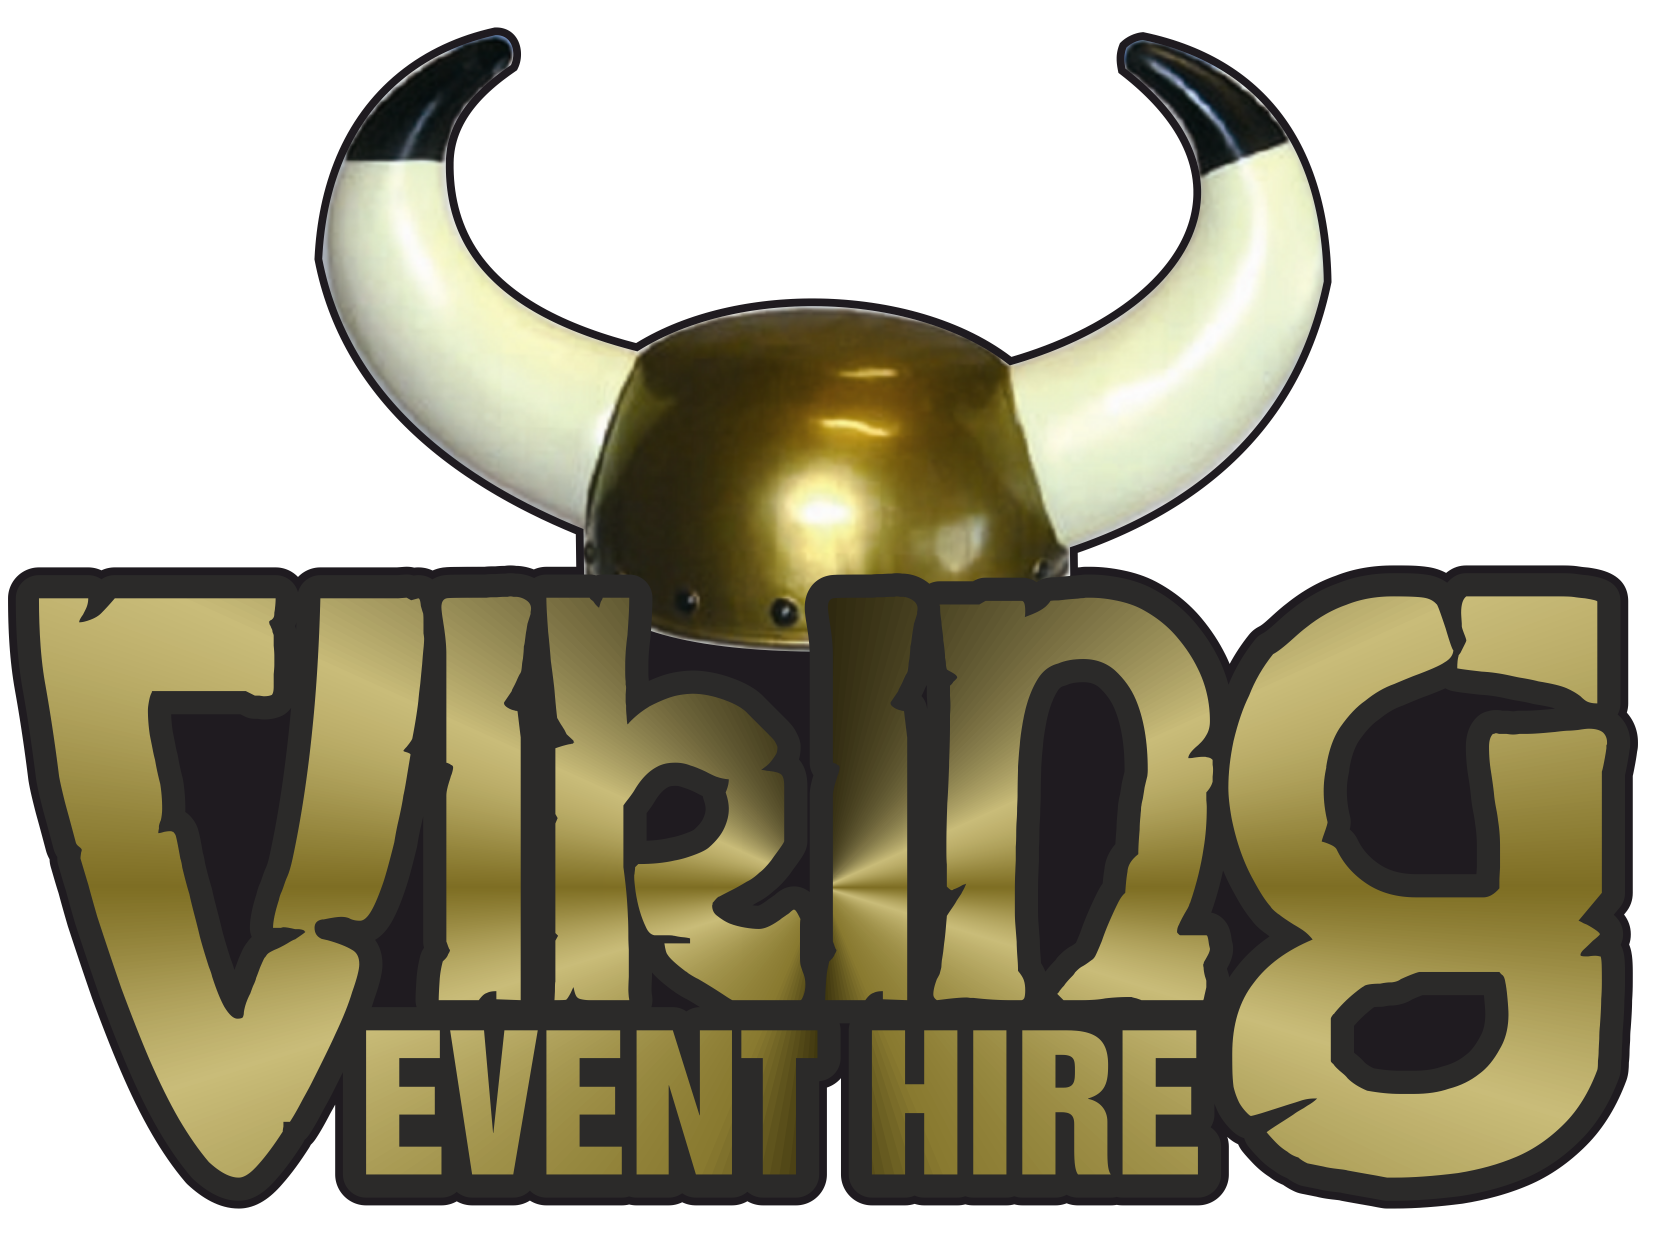 Viking Event Hire